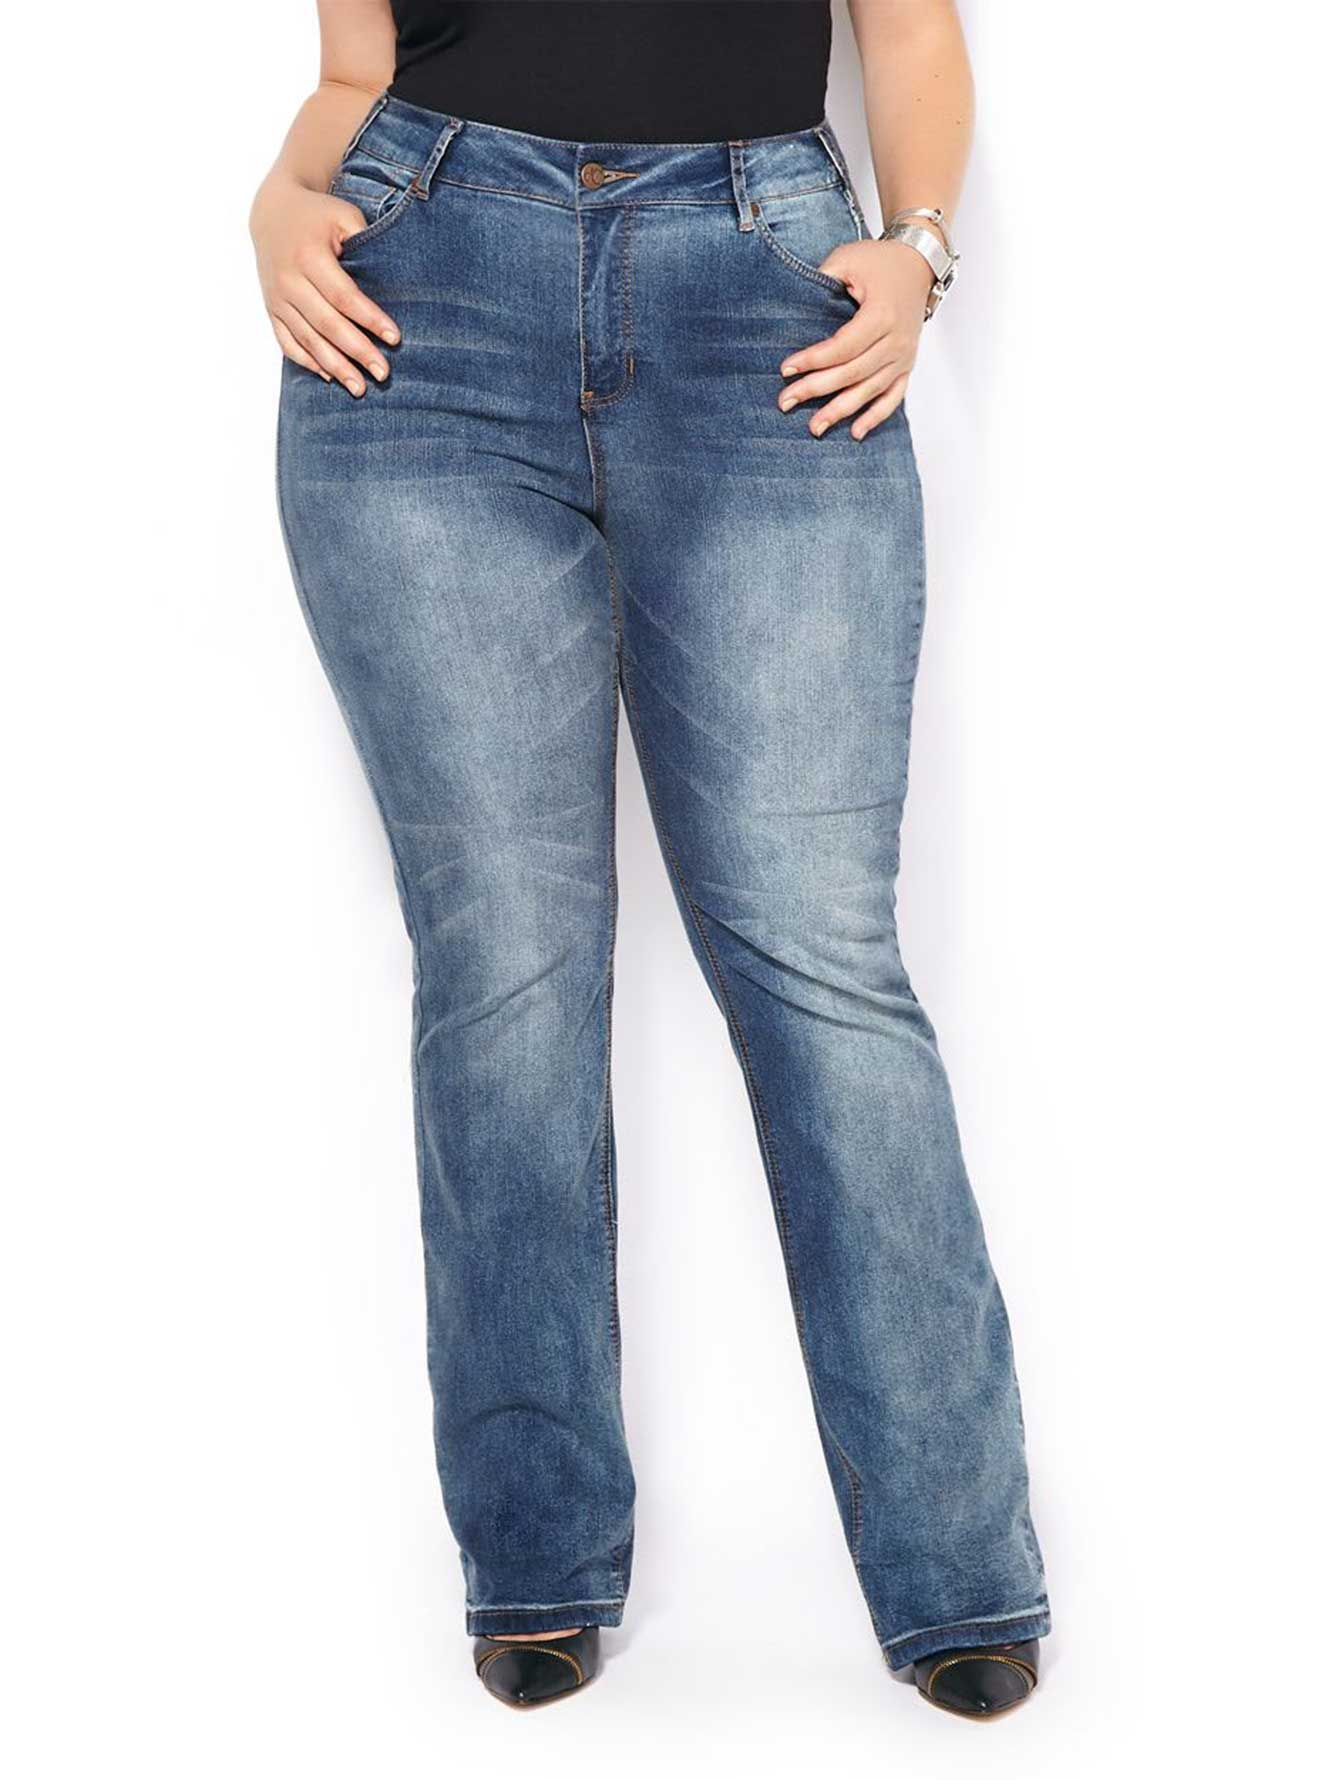 ONLINE ONLY - d/c JEANS Tall Slightly Curvy Fit Bootcut Jean | Penningtons